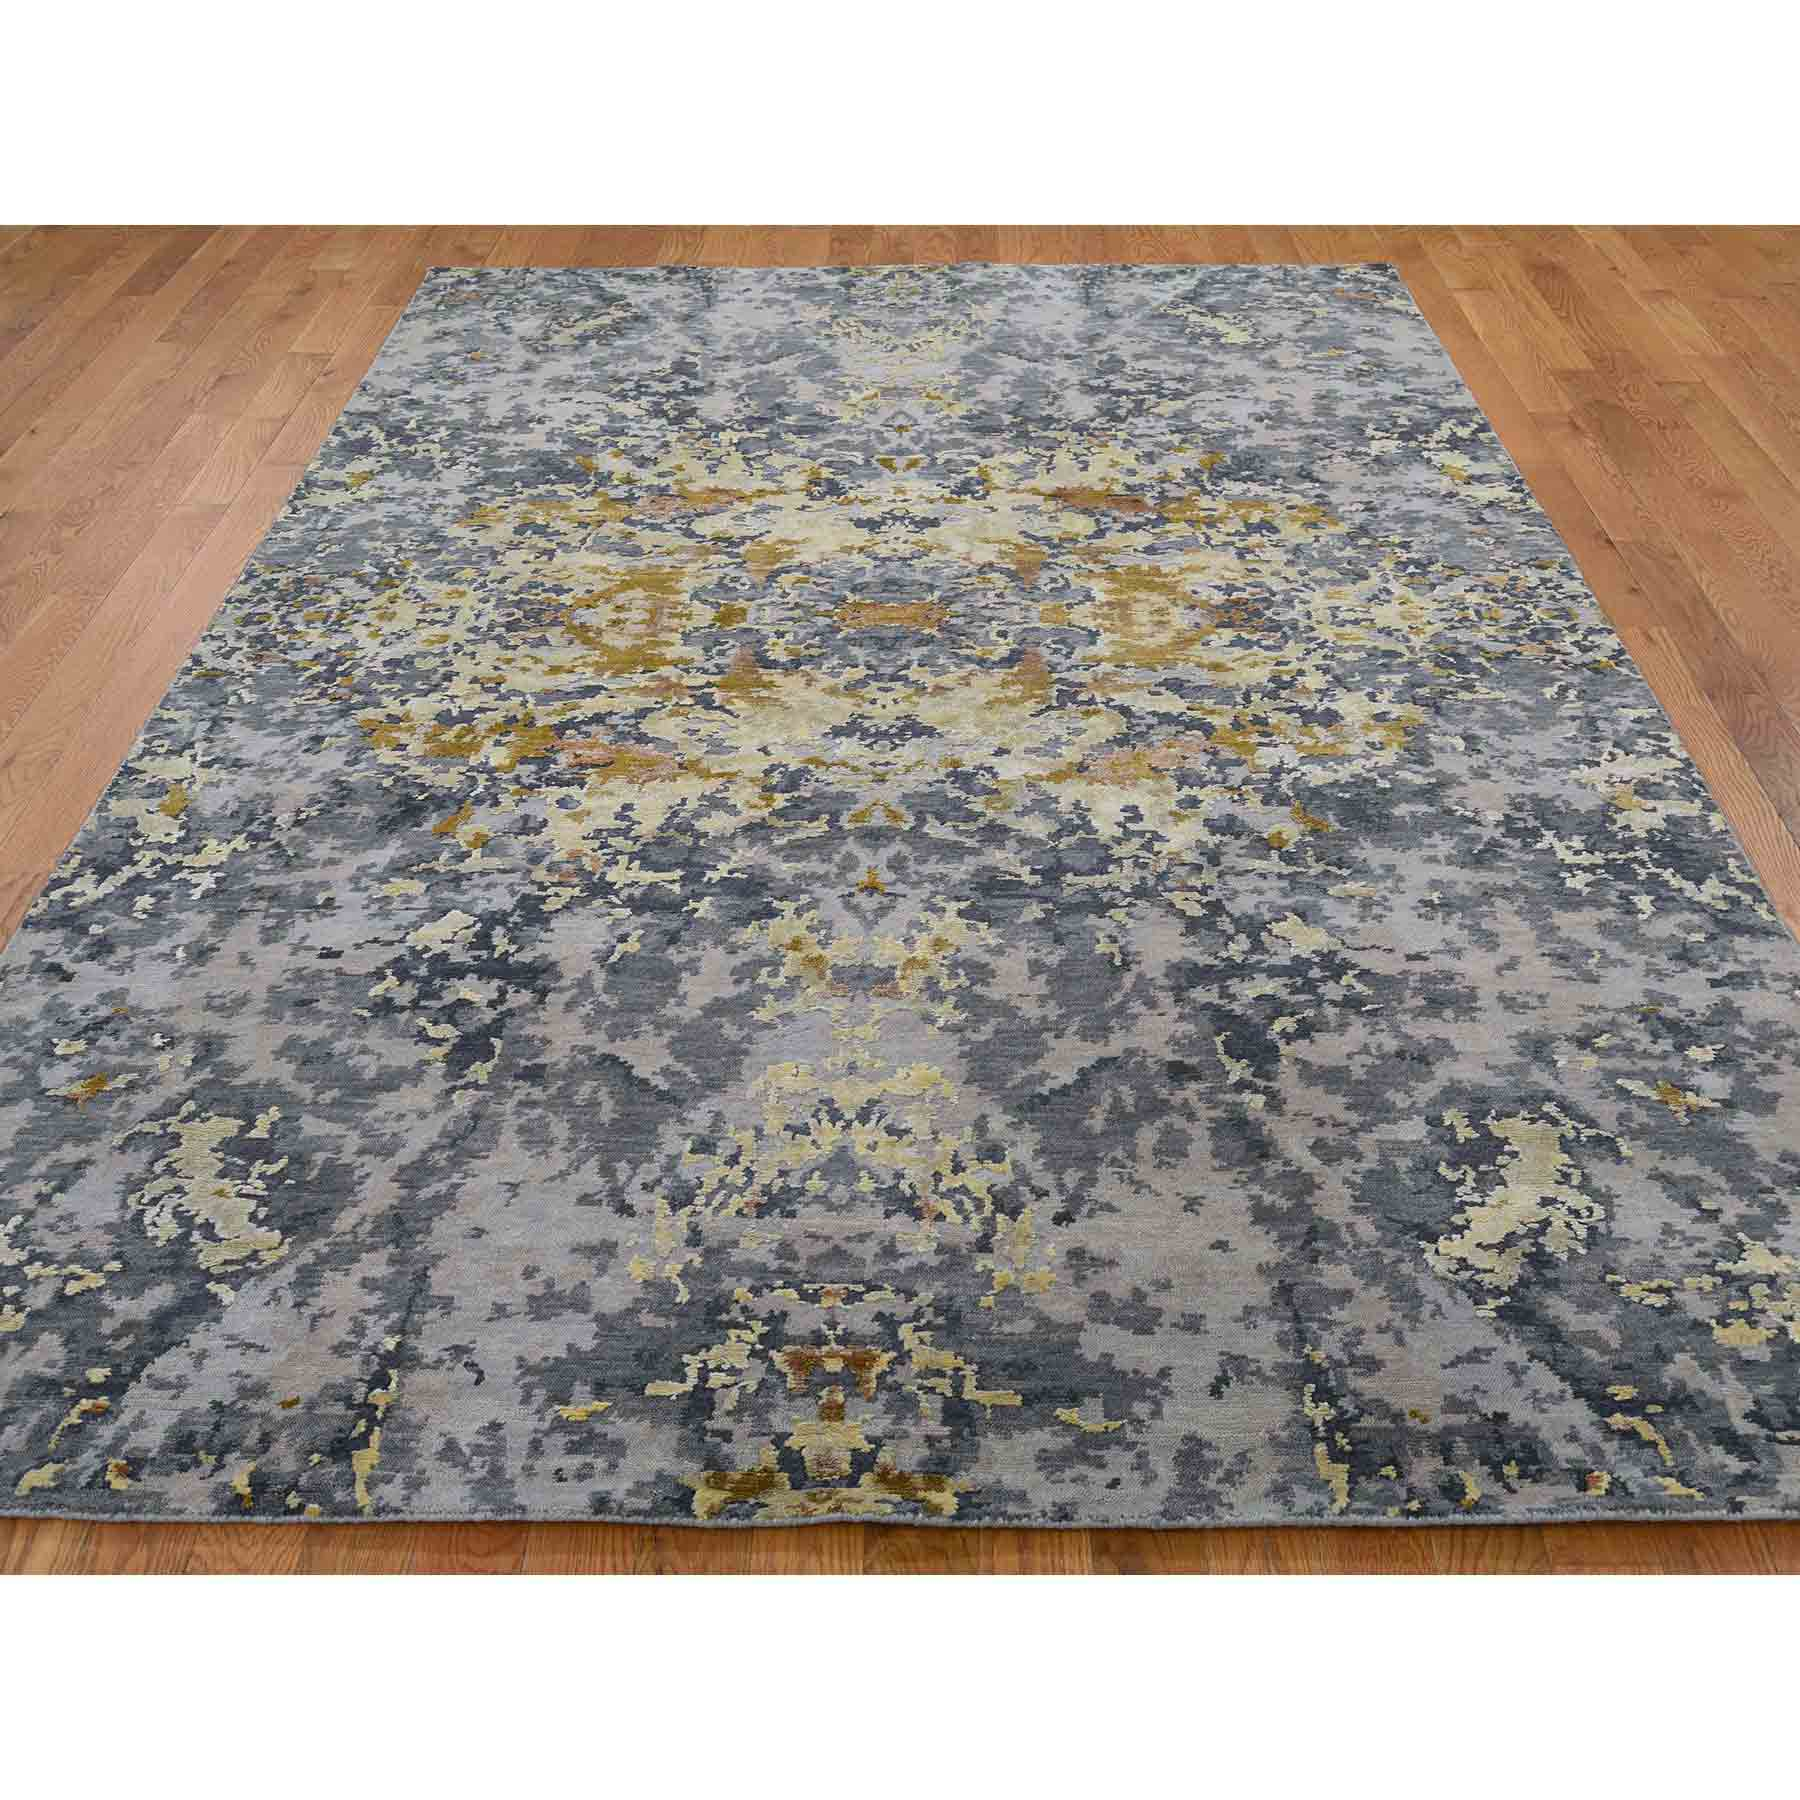 Modern-Contemporary-Hand-Knotted-Rug-208975